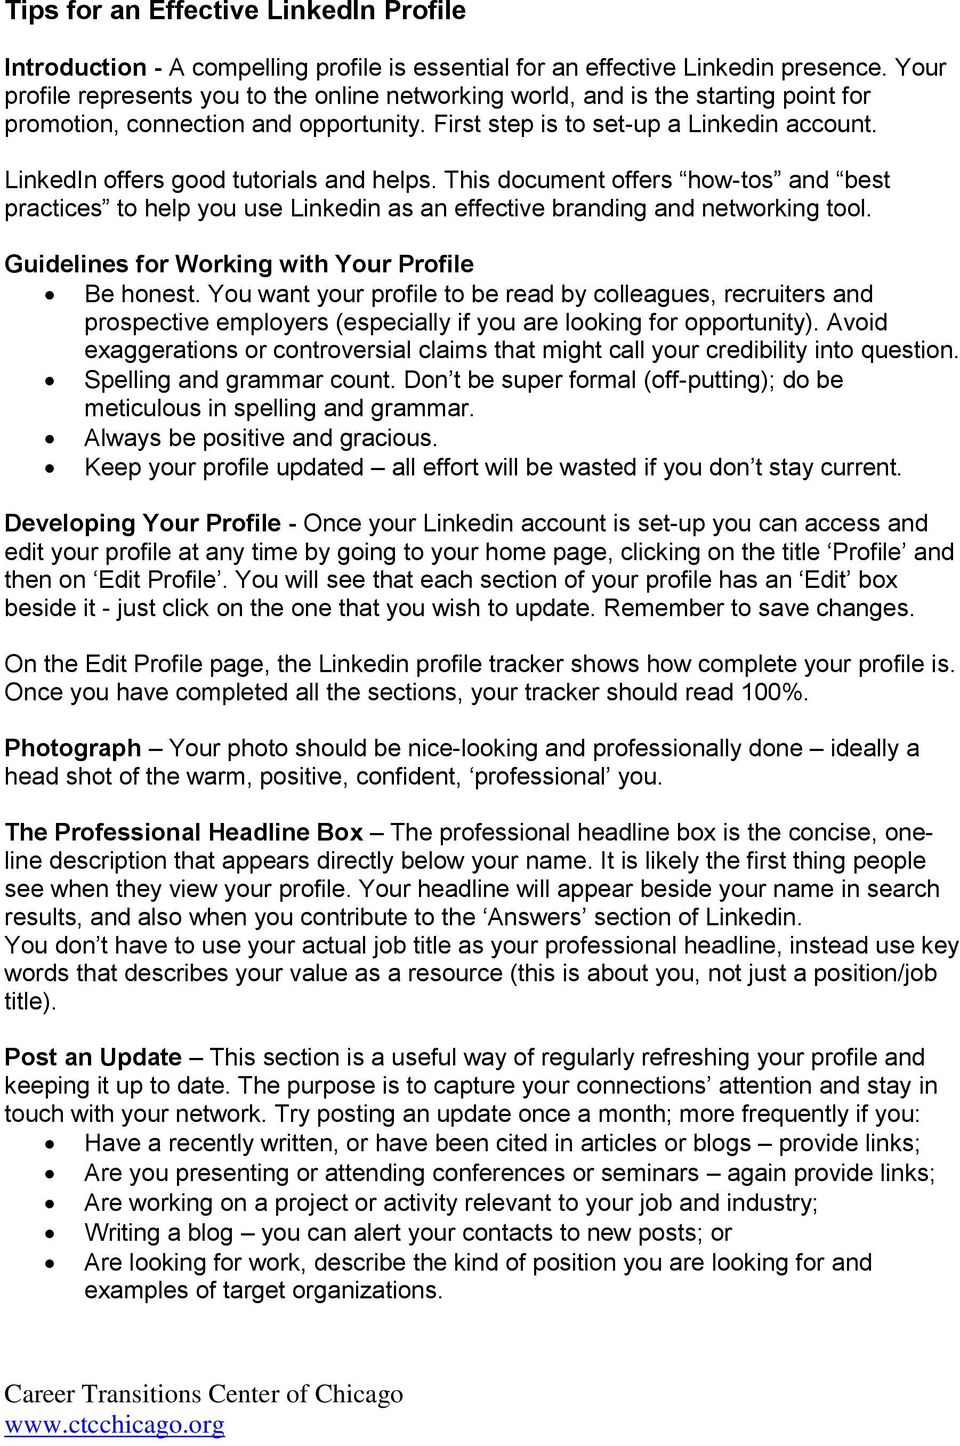 LinkedIn offers good tutorials and helps. This document offers how-tos and best practices to help you use Linkedin as an effective branding and networking tool.